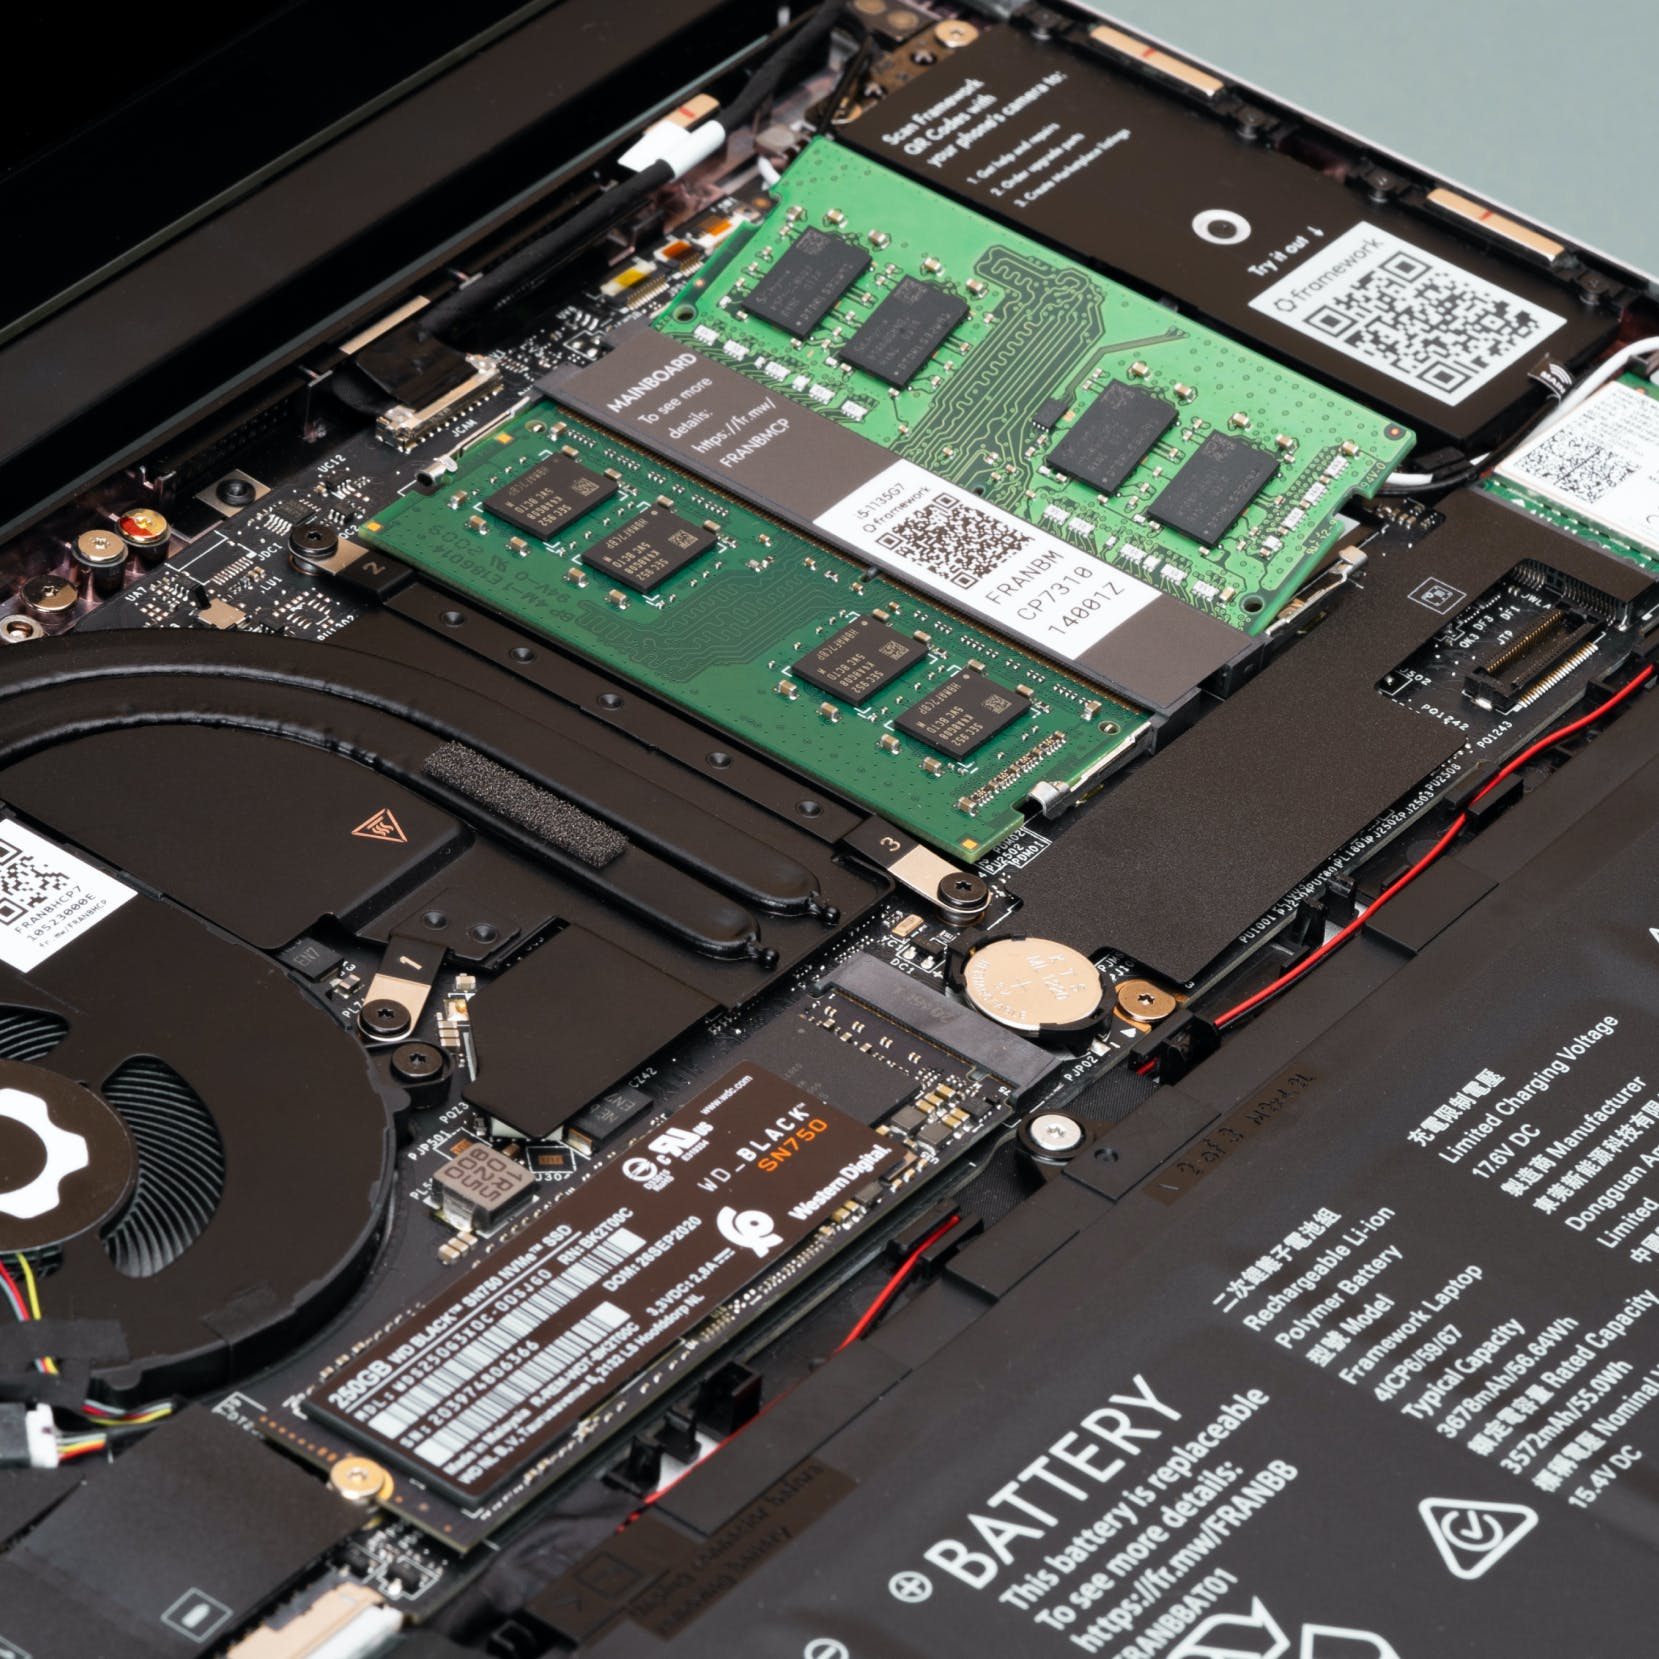 laptop internals with memory